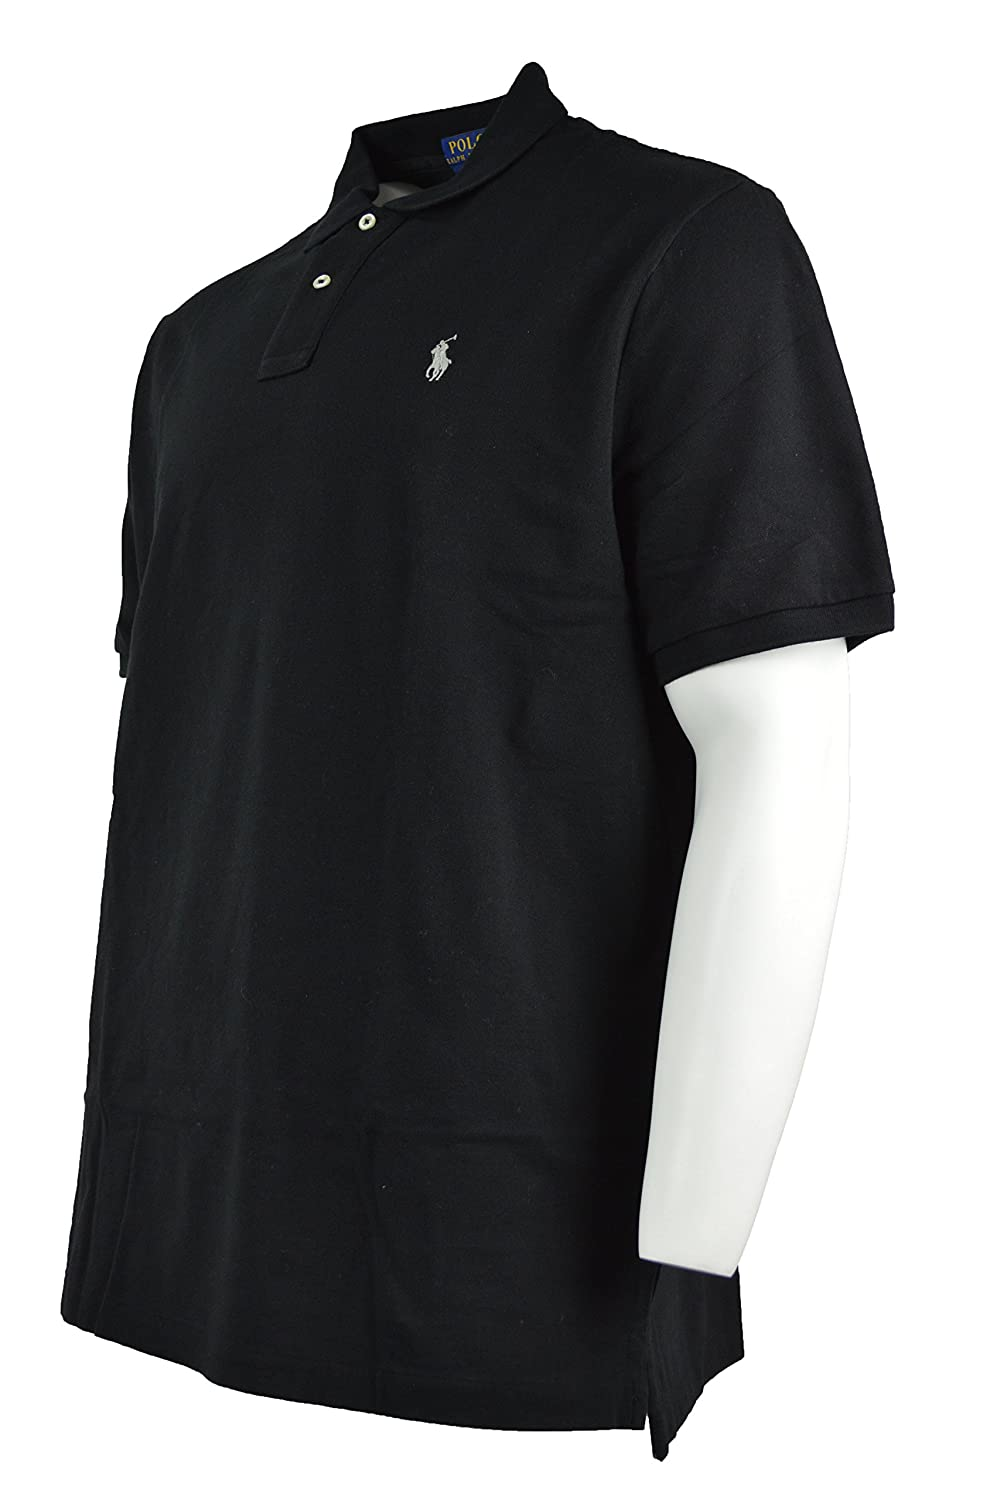 cf3e57e833aa7 Amazon.com  Polo Ralph Lauren Mens Original Mesh Black Cotton Polo Shirt  (XL)  Home   Kitchen